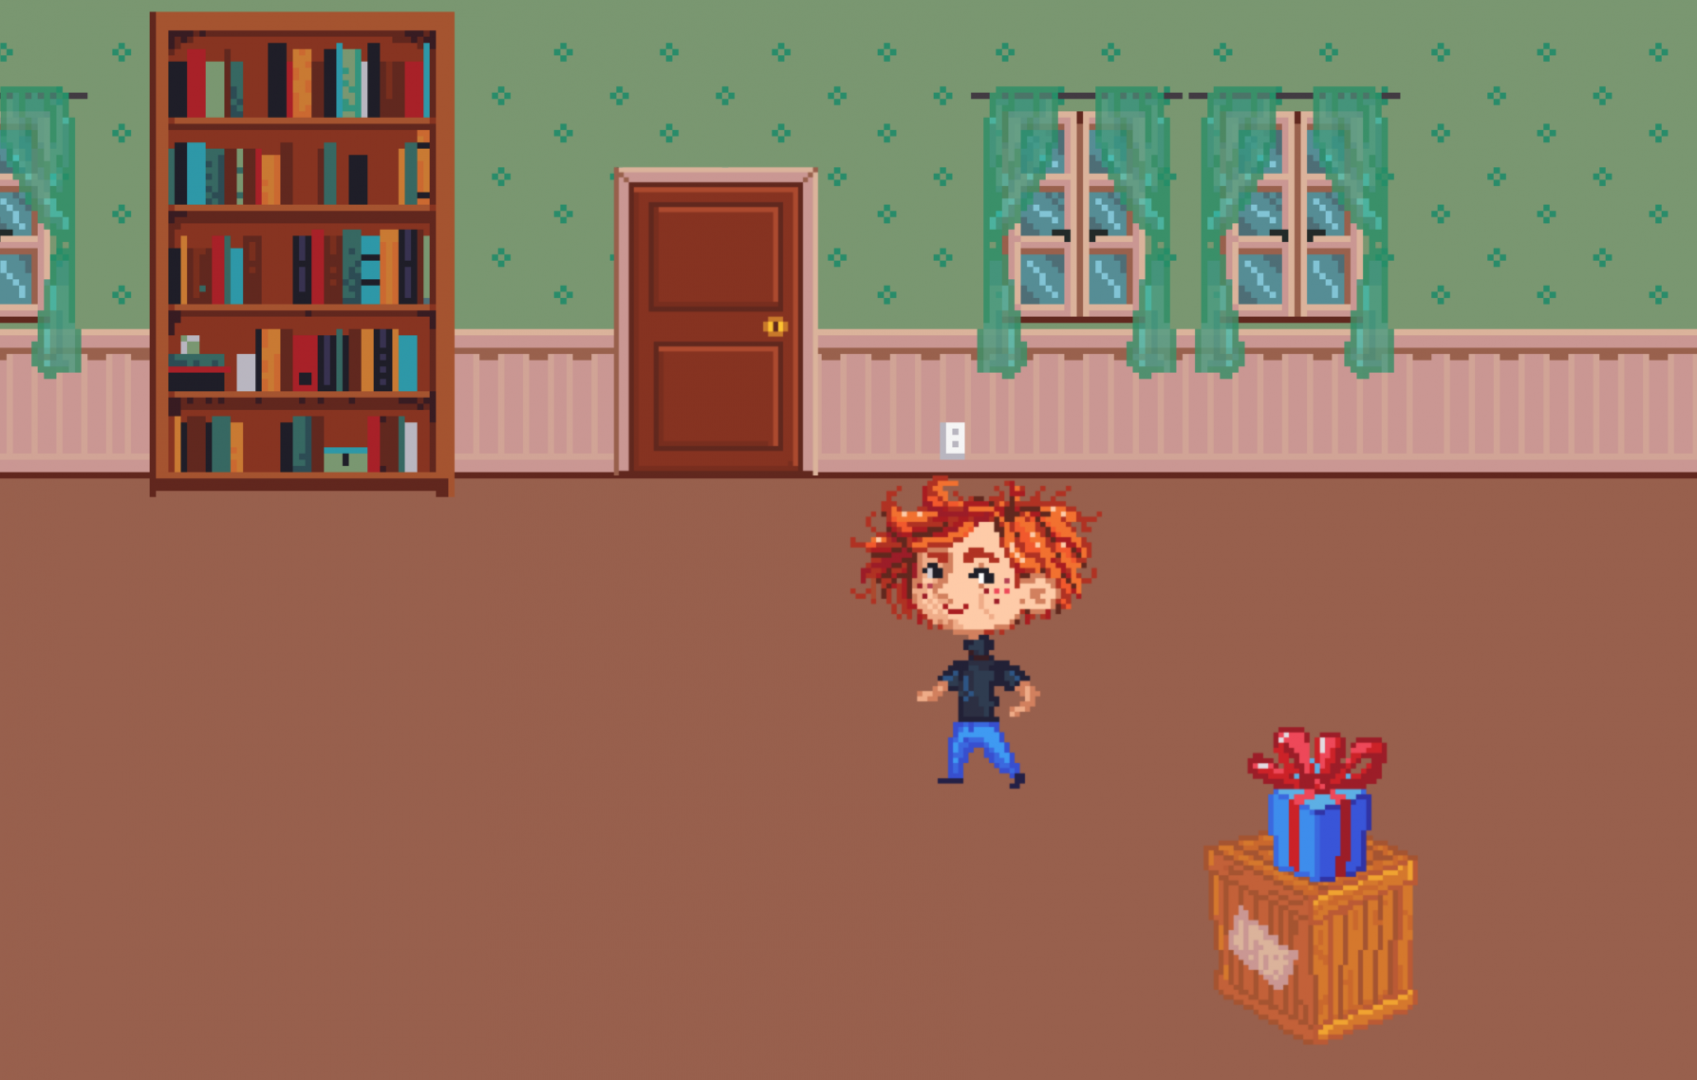 Screenshot 1 of Space Candy playable concept.